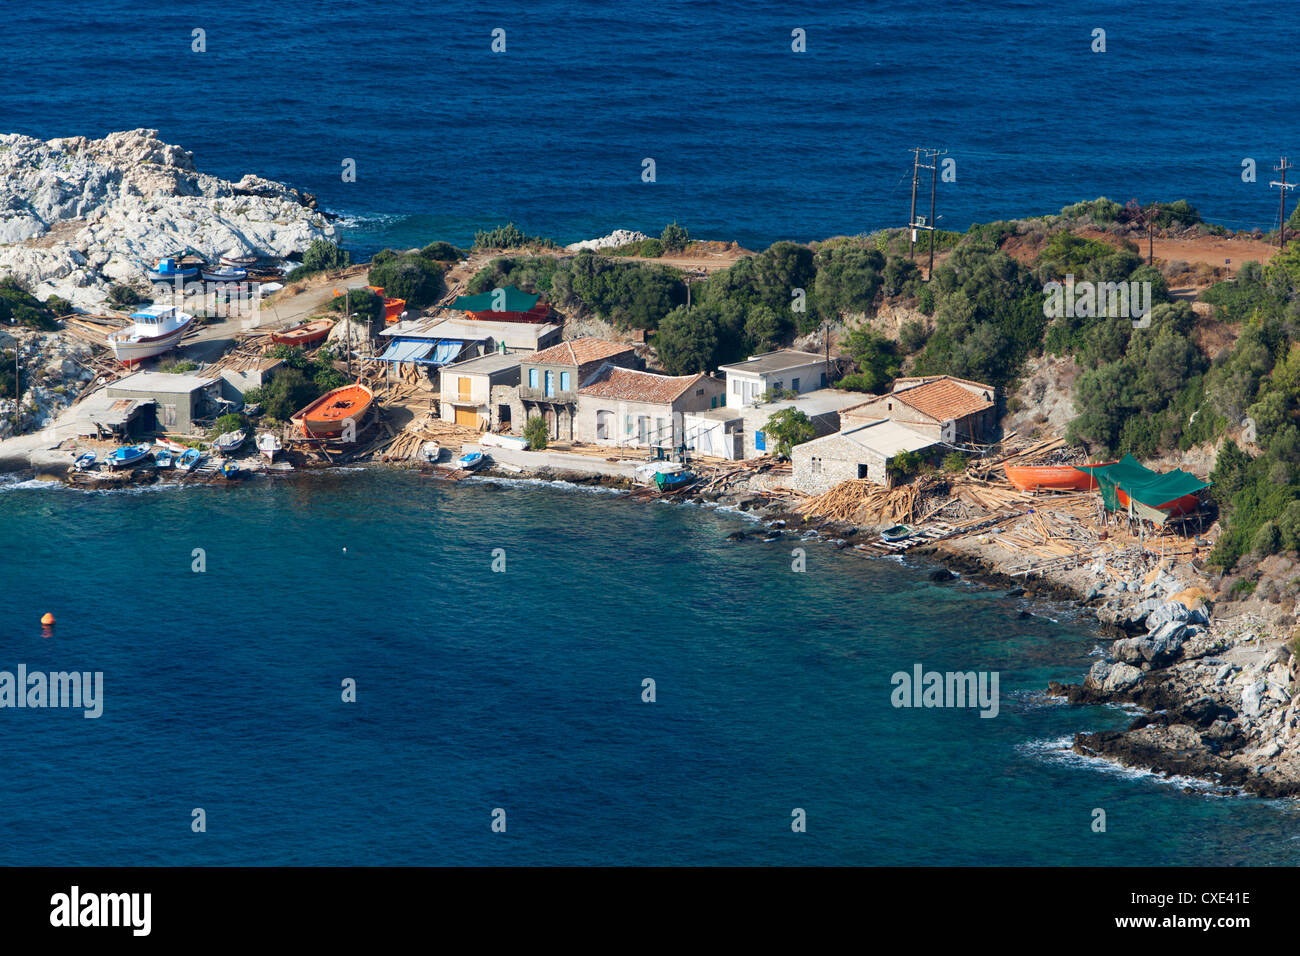 Traditional boat building yard, Aghios Isidhoros, Samos, Aegean Islands - Stock Image